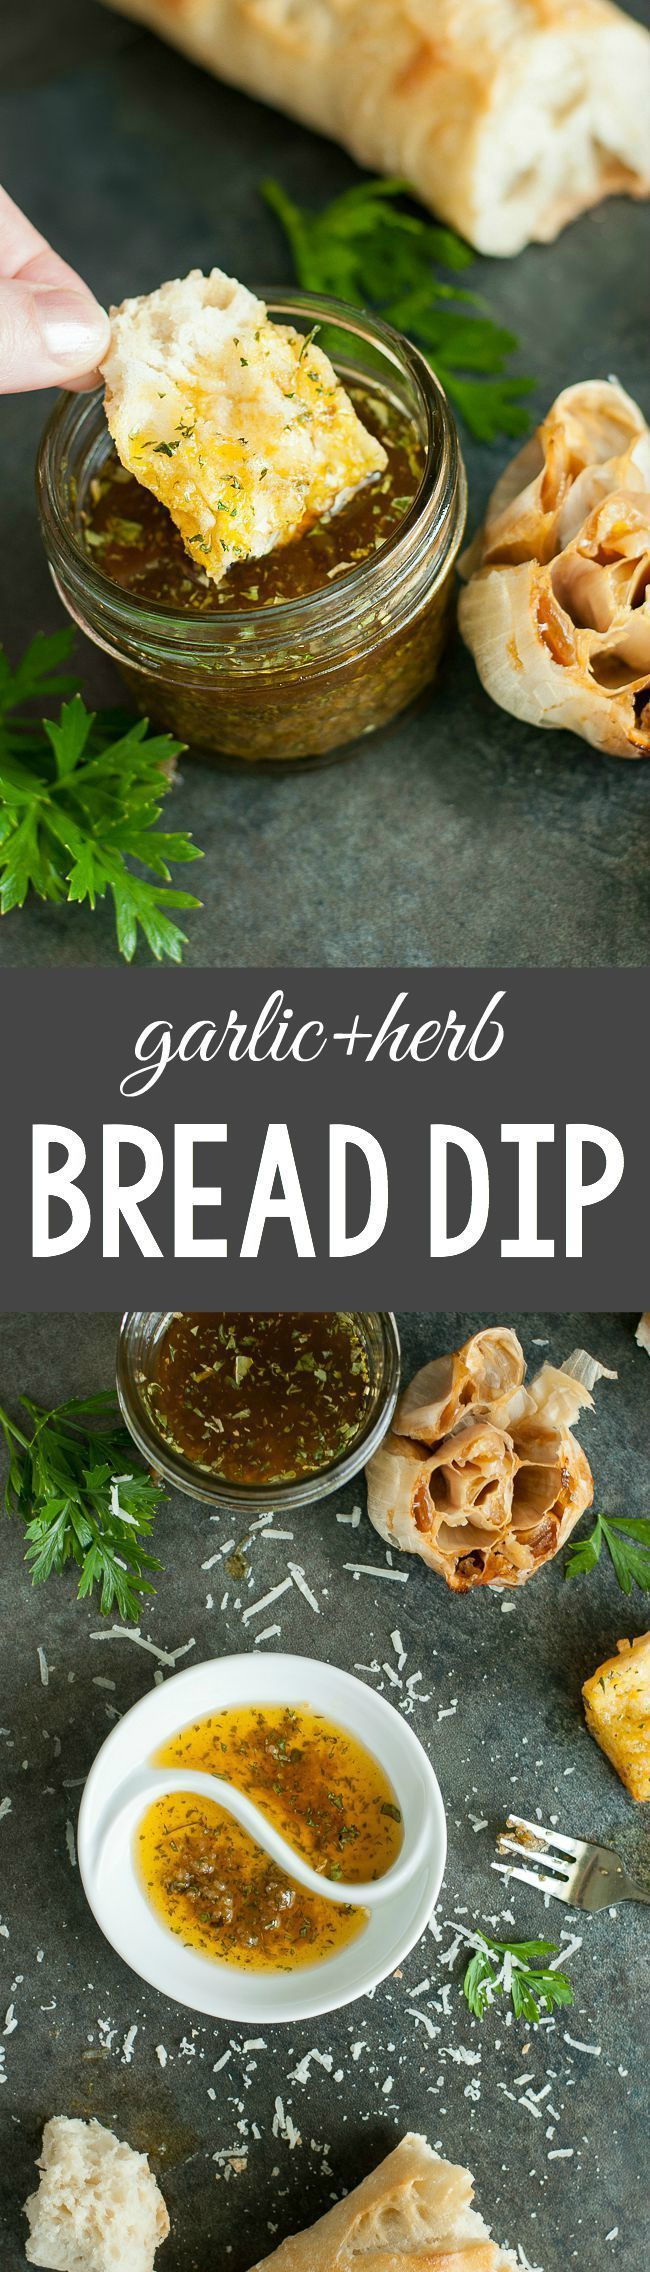 This Italian restaurant copycat will rock your socks! Grab a baguette and your favorite extra virgin olive oil to make this delicious garlic herb bread dip!